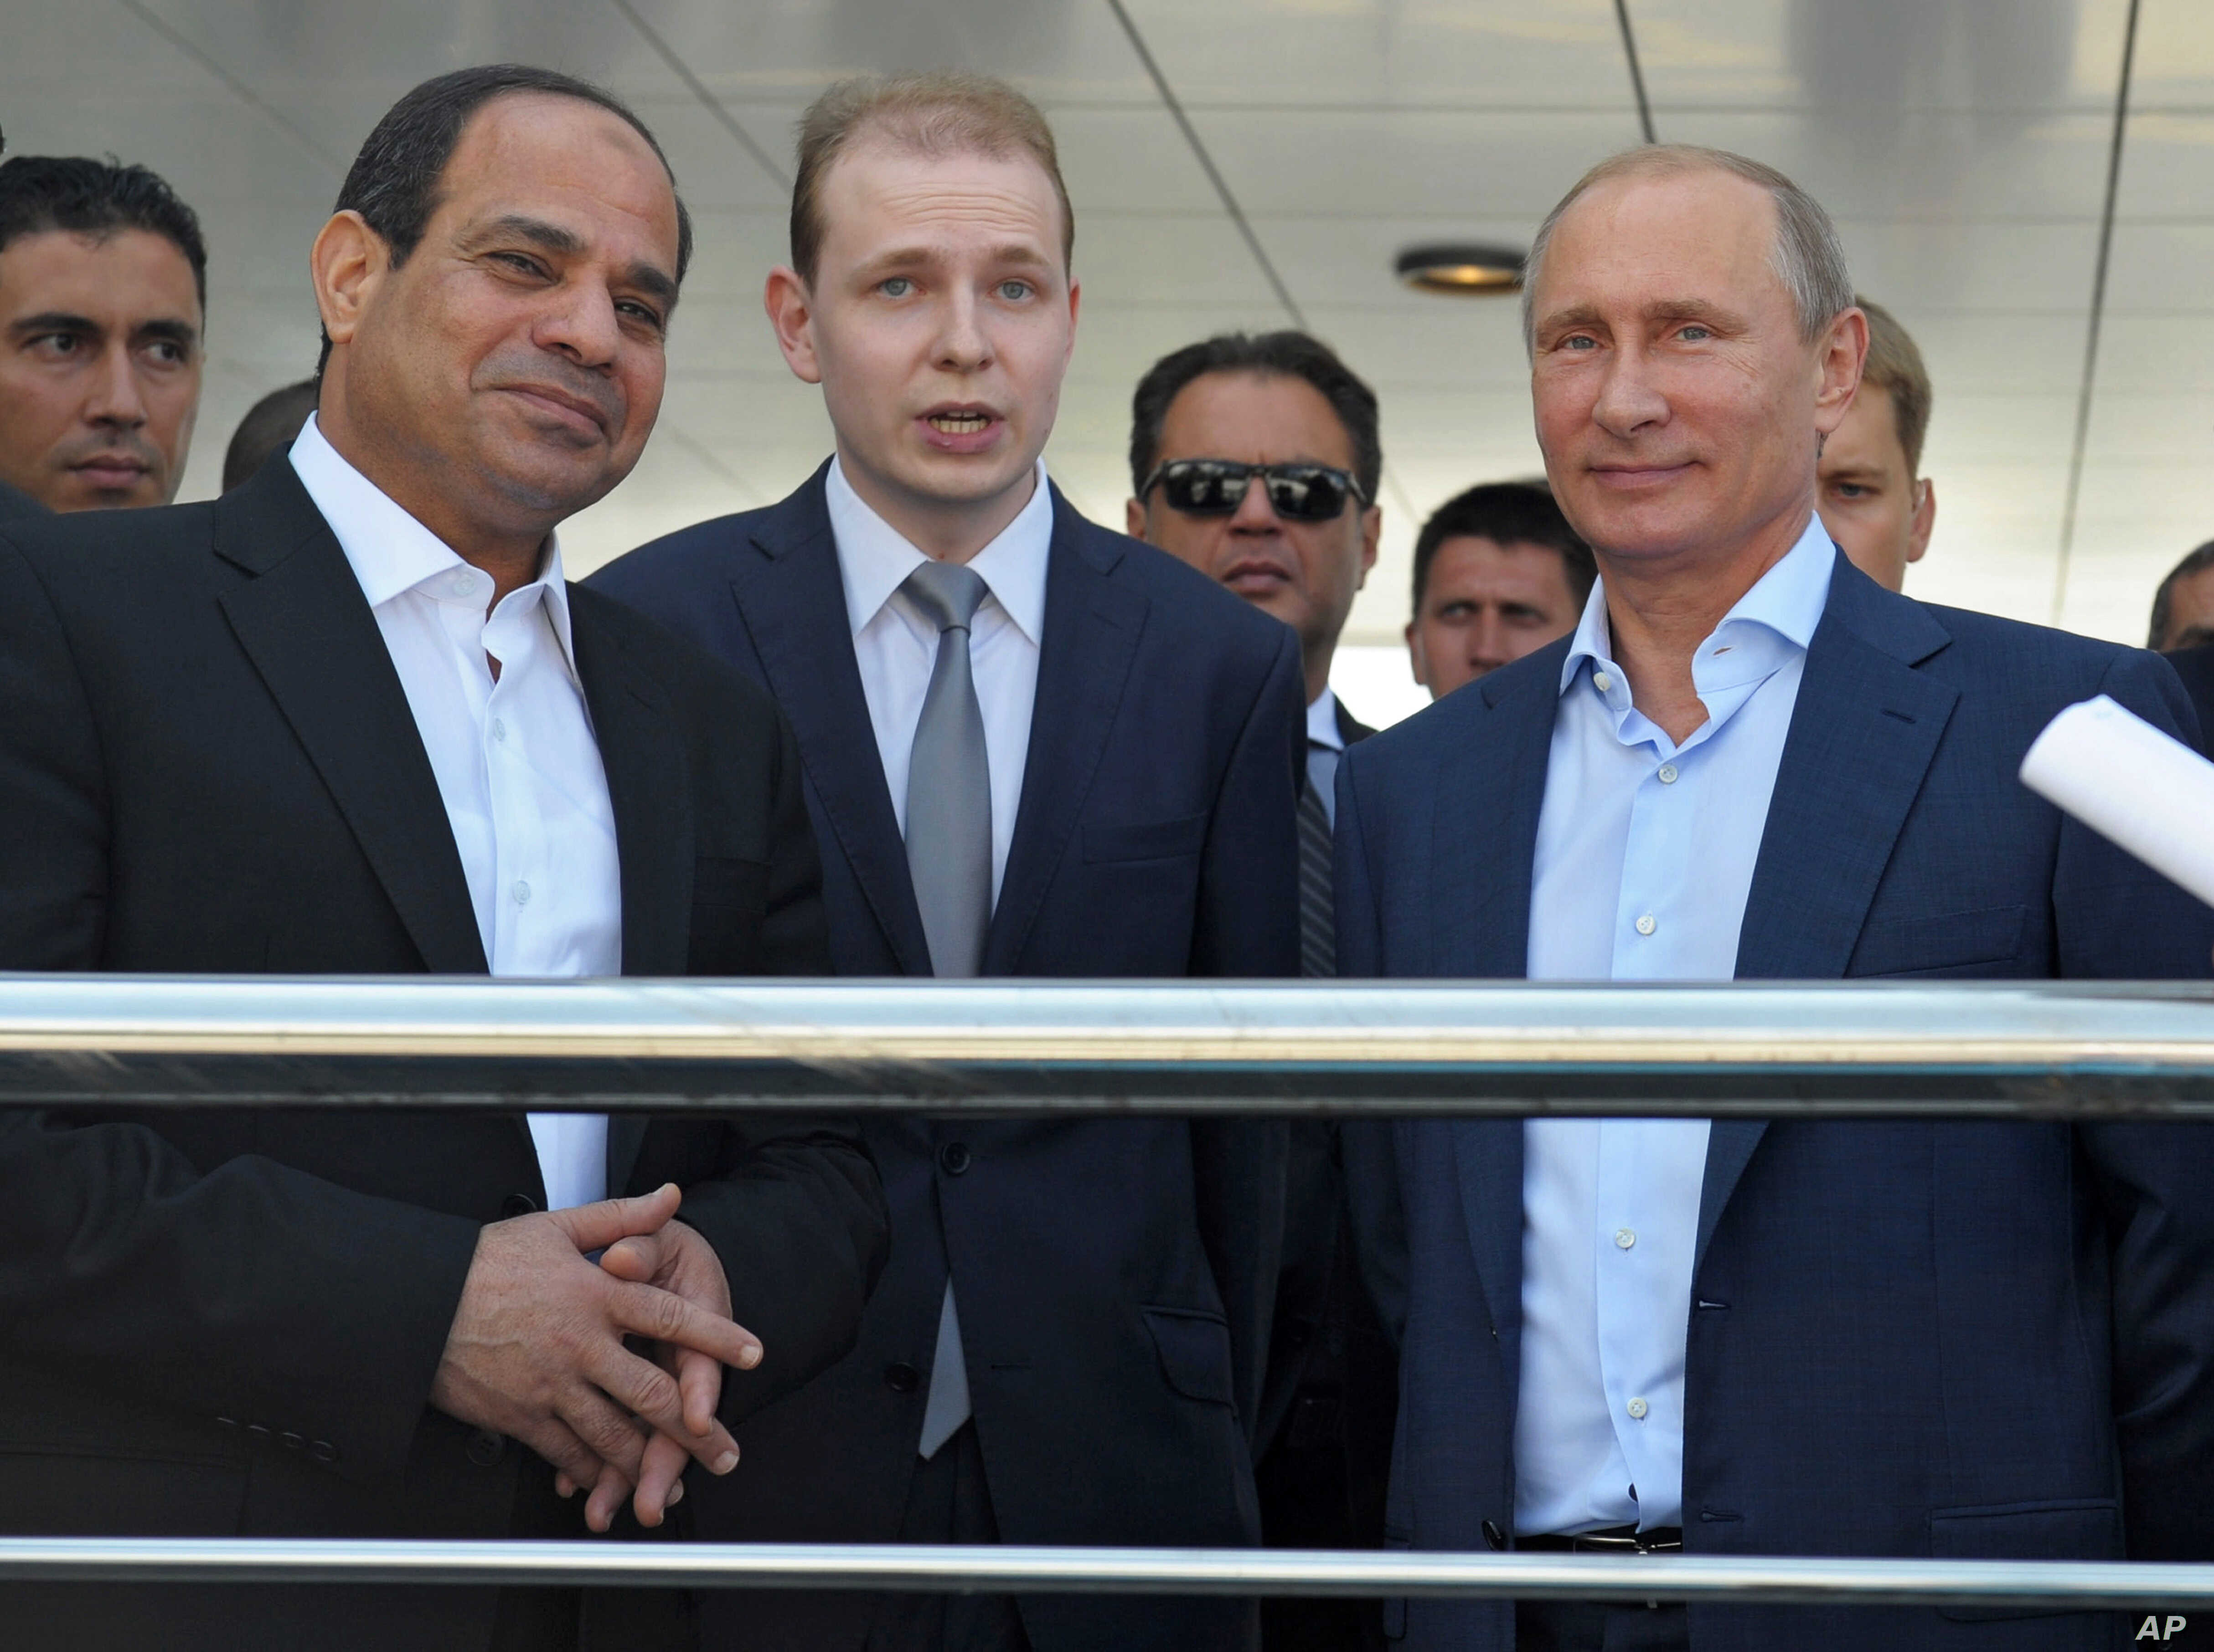 Russian President Vladimir Putin, right, and Egyptian President Abdel-Fattah el-Sissi, second left, listen to a translator during a meeting in the Russian Black Sea resort of Sochi, Russia, Aug. 12, 2014.